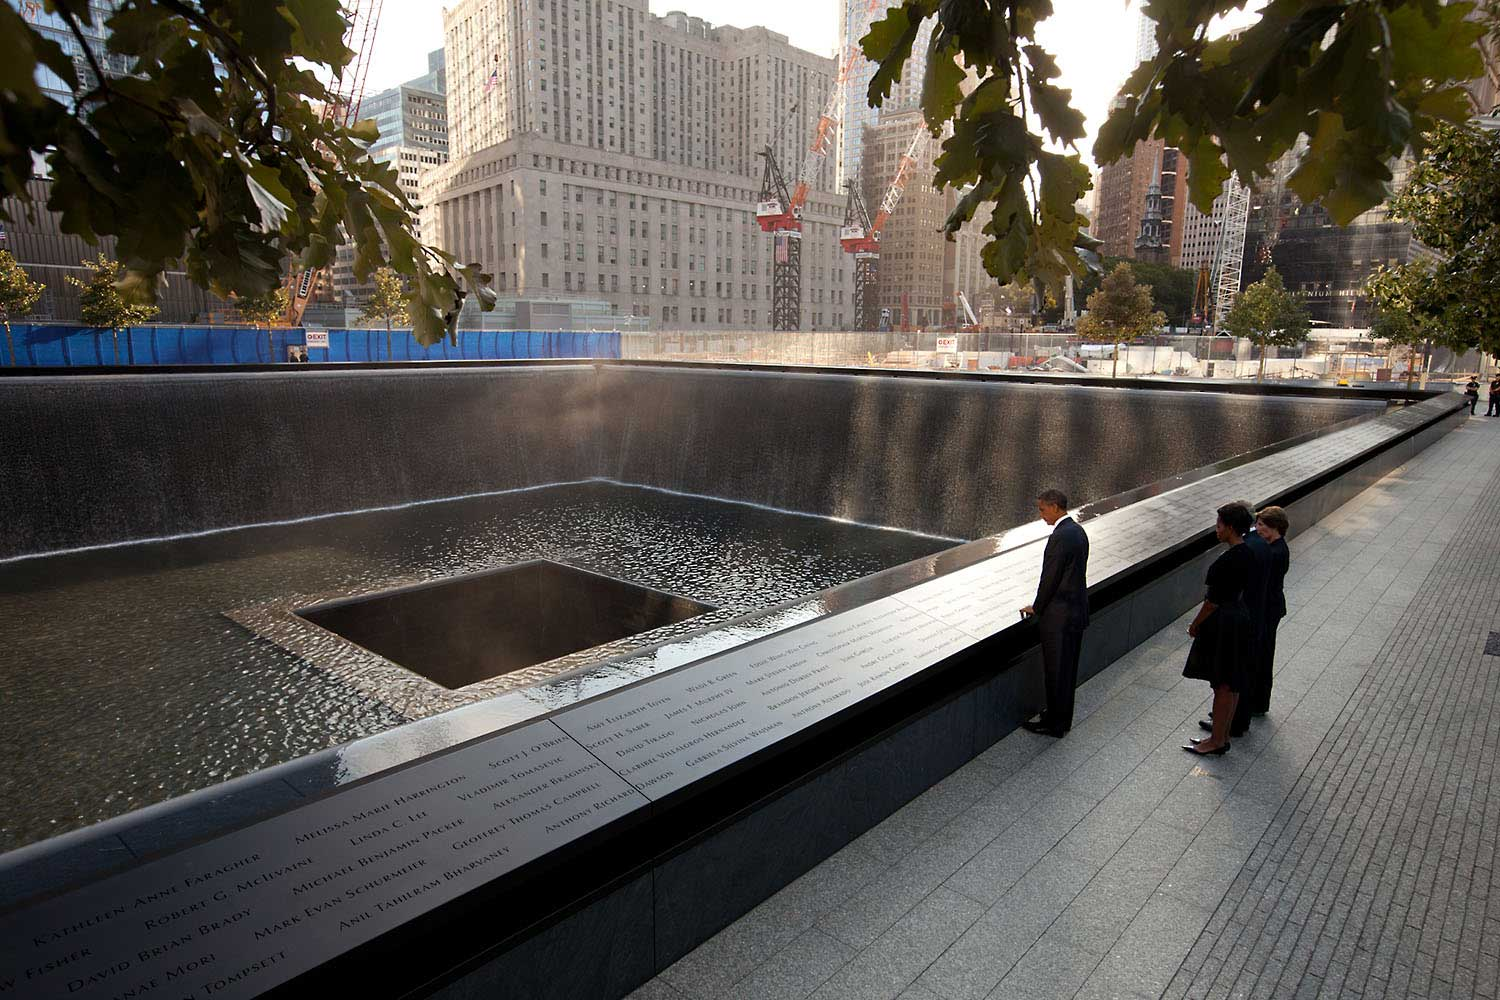 Chuck Kennedy captured this scene with a remote camera as the President and First Lady, along with former President George W. Bush and former First Lady Laura Bush, paused at the North Memorial Pool of the National September 11 Memorial in New York City. The North Memorial pool sits in the footprint of the north tower, formerly 1 World Trade Center.